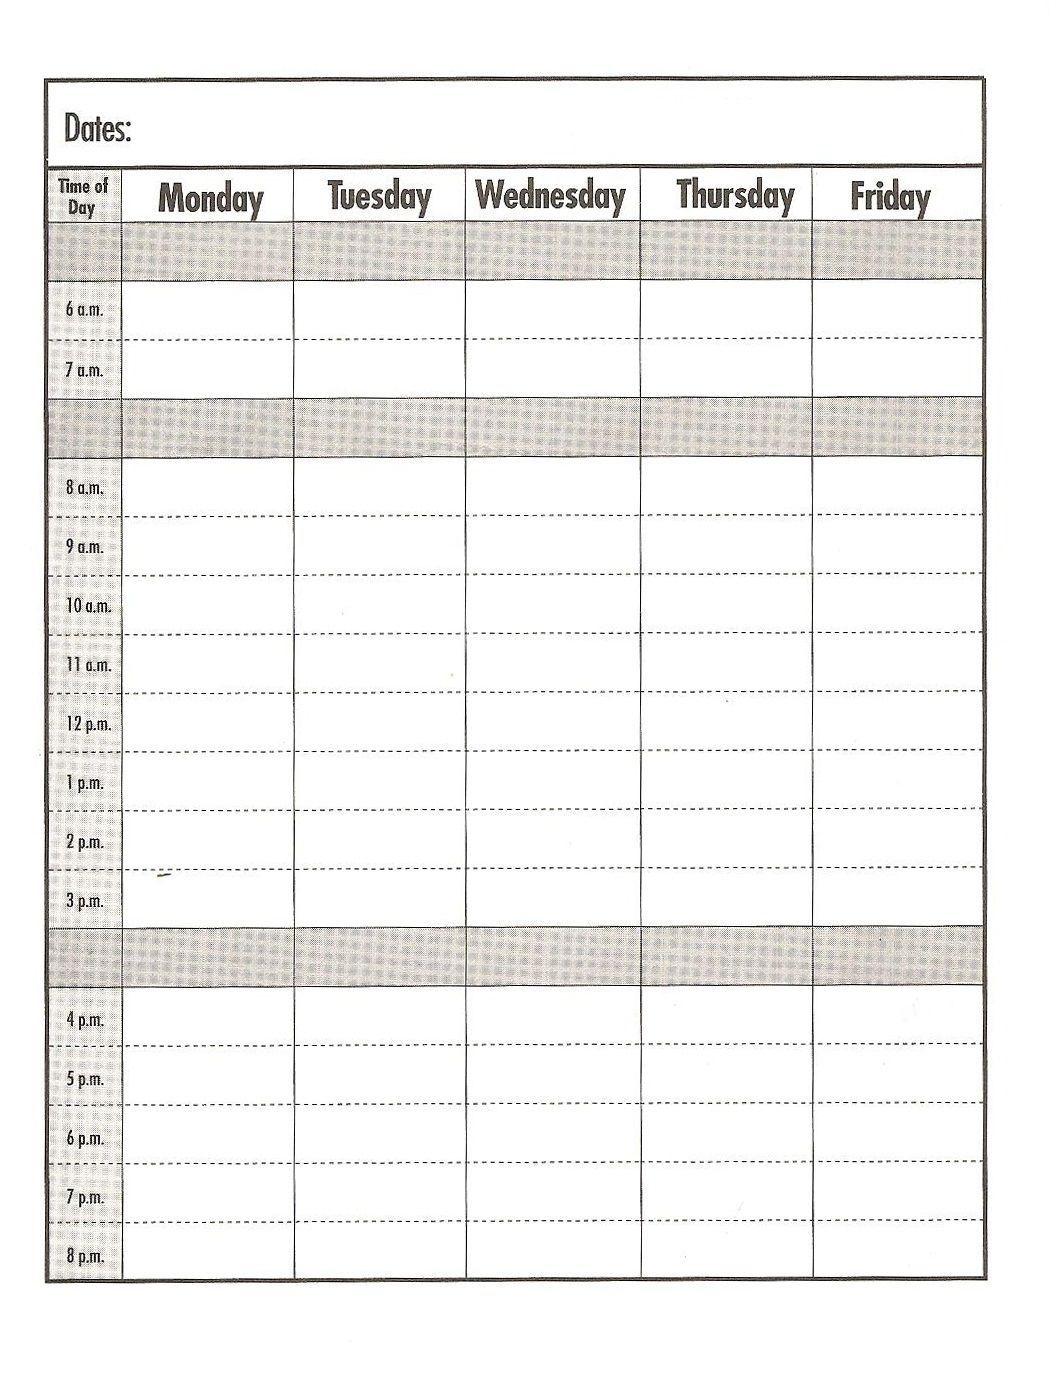 Free Calendar Print Out Pages Daily With Time Slots On